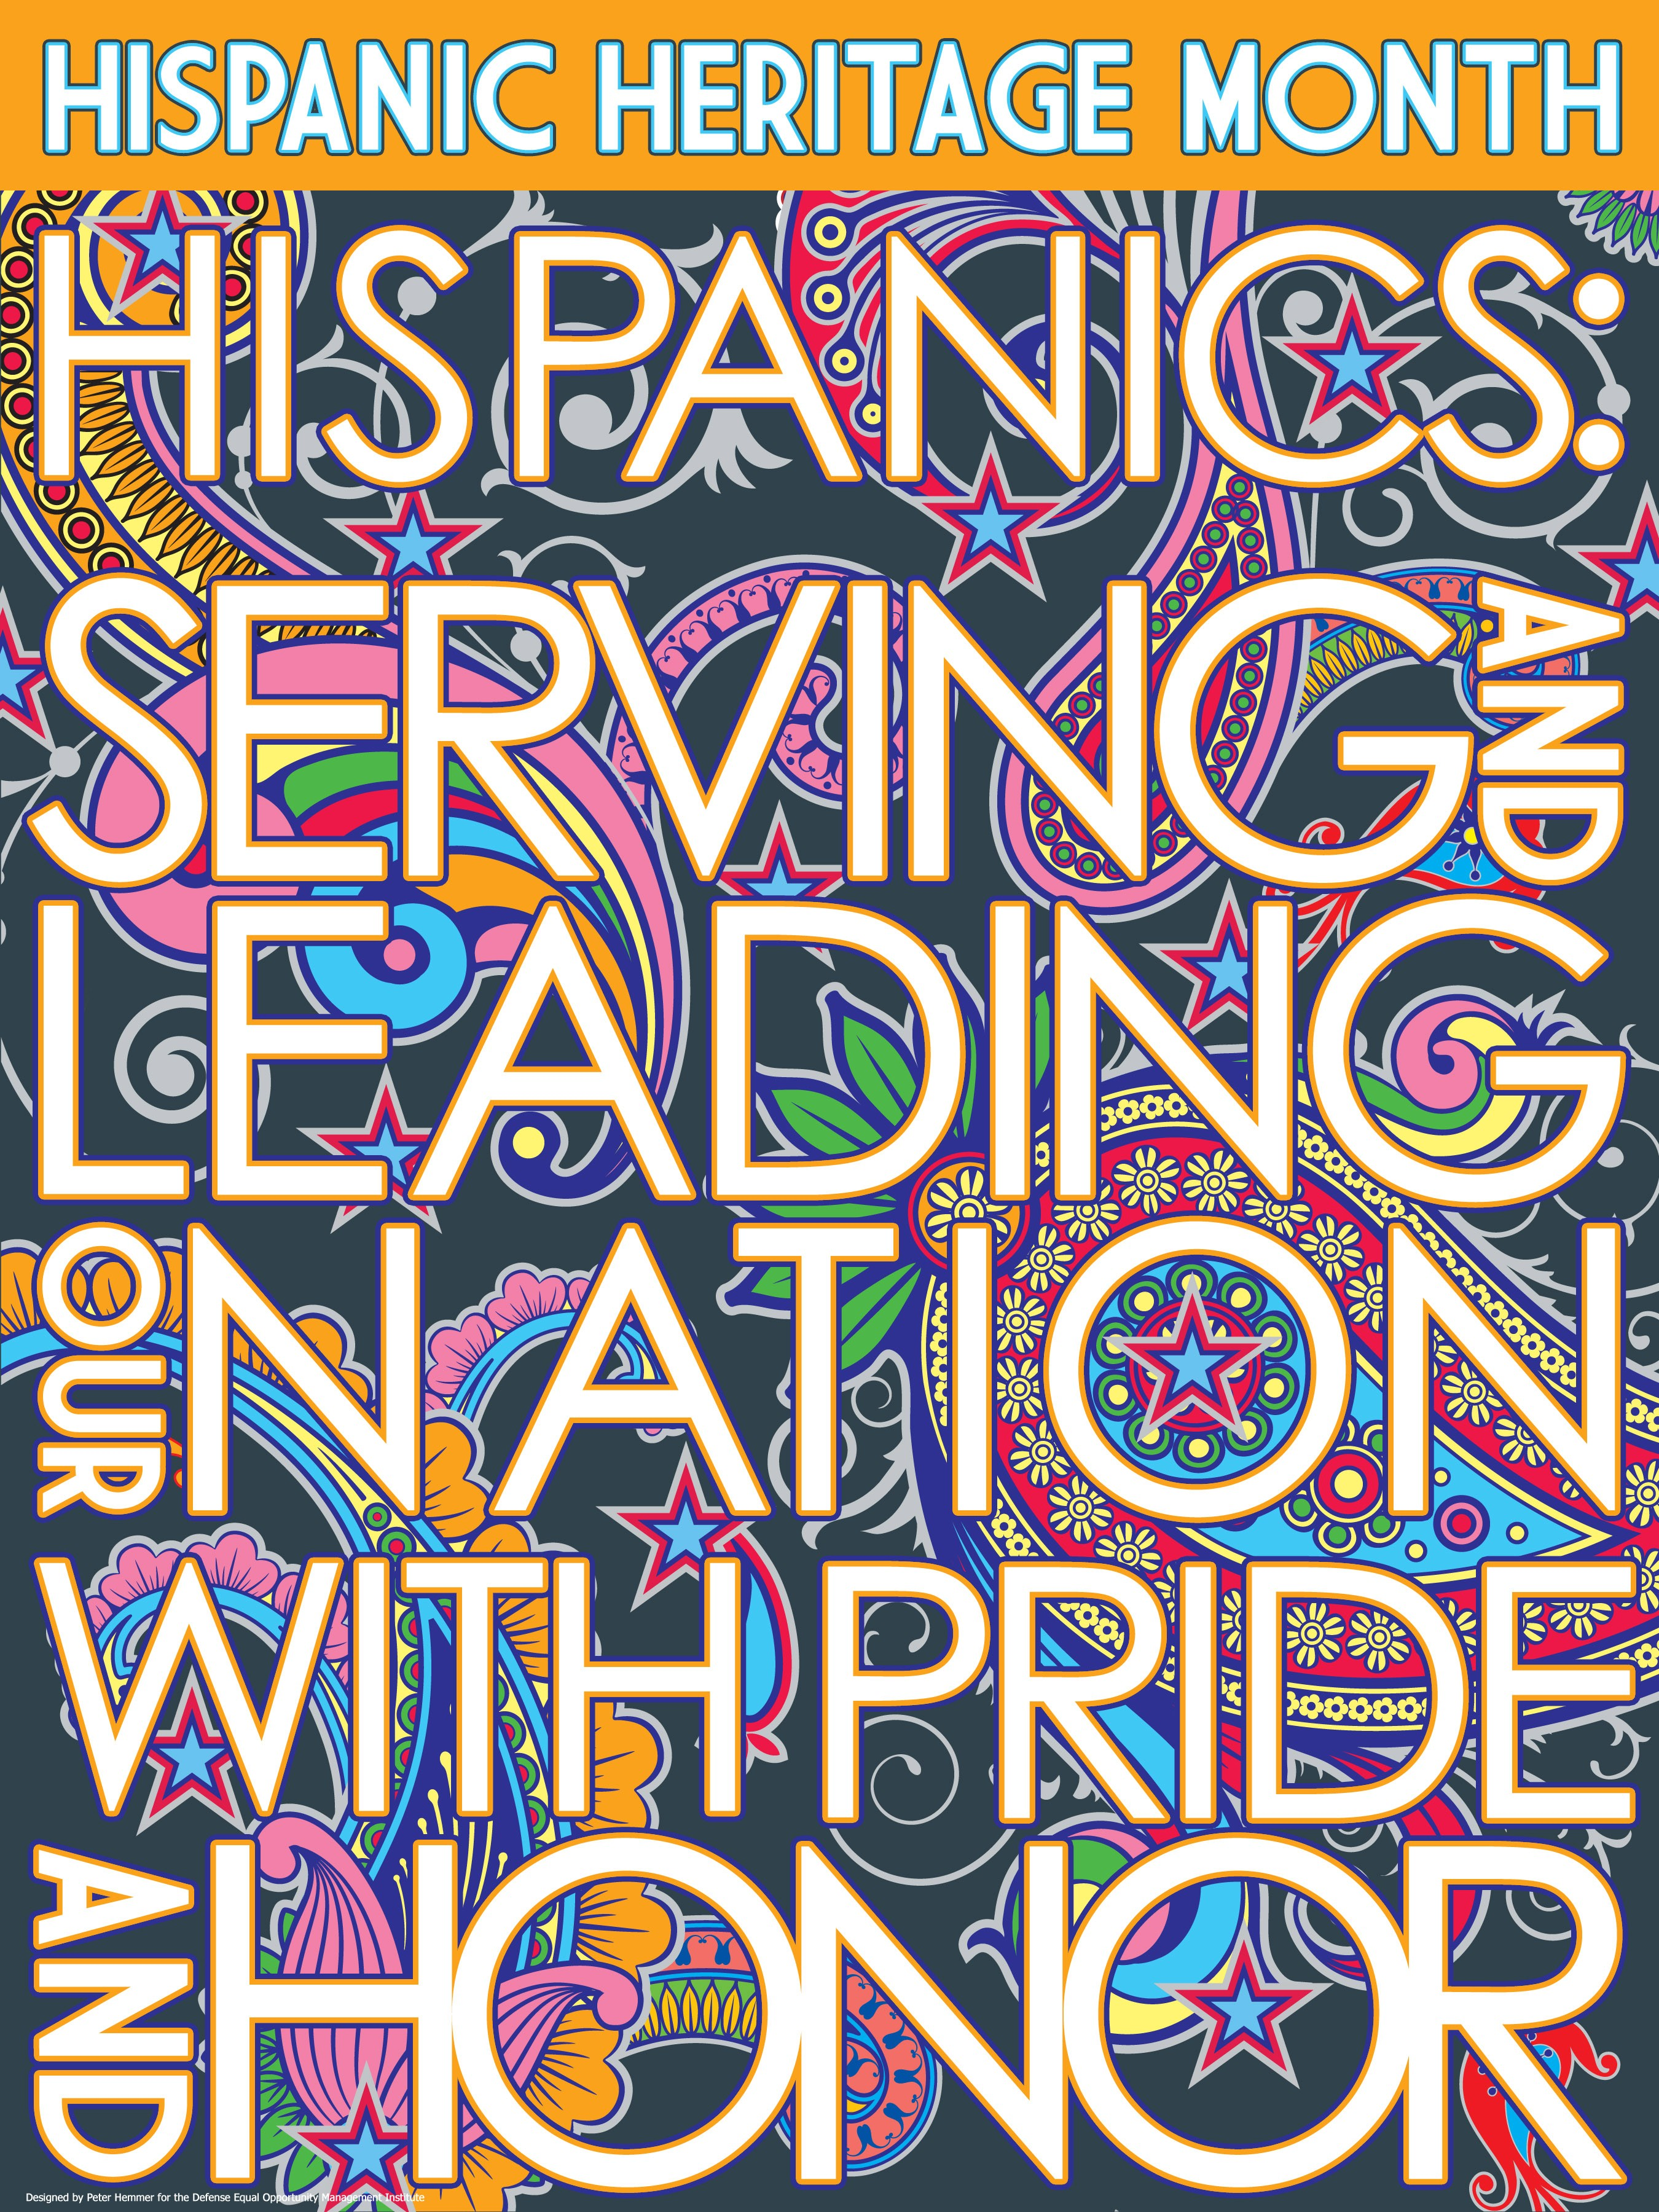 Hispanics Serving And Leading Our Nation With Pride And